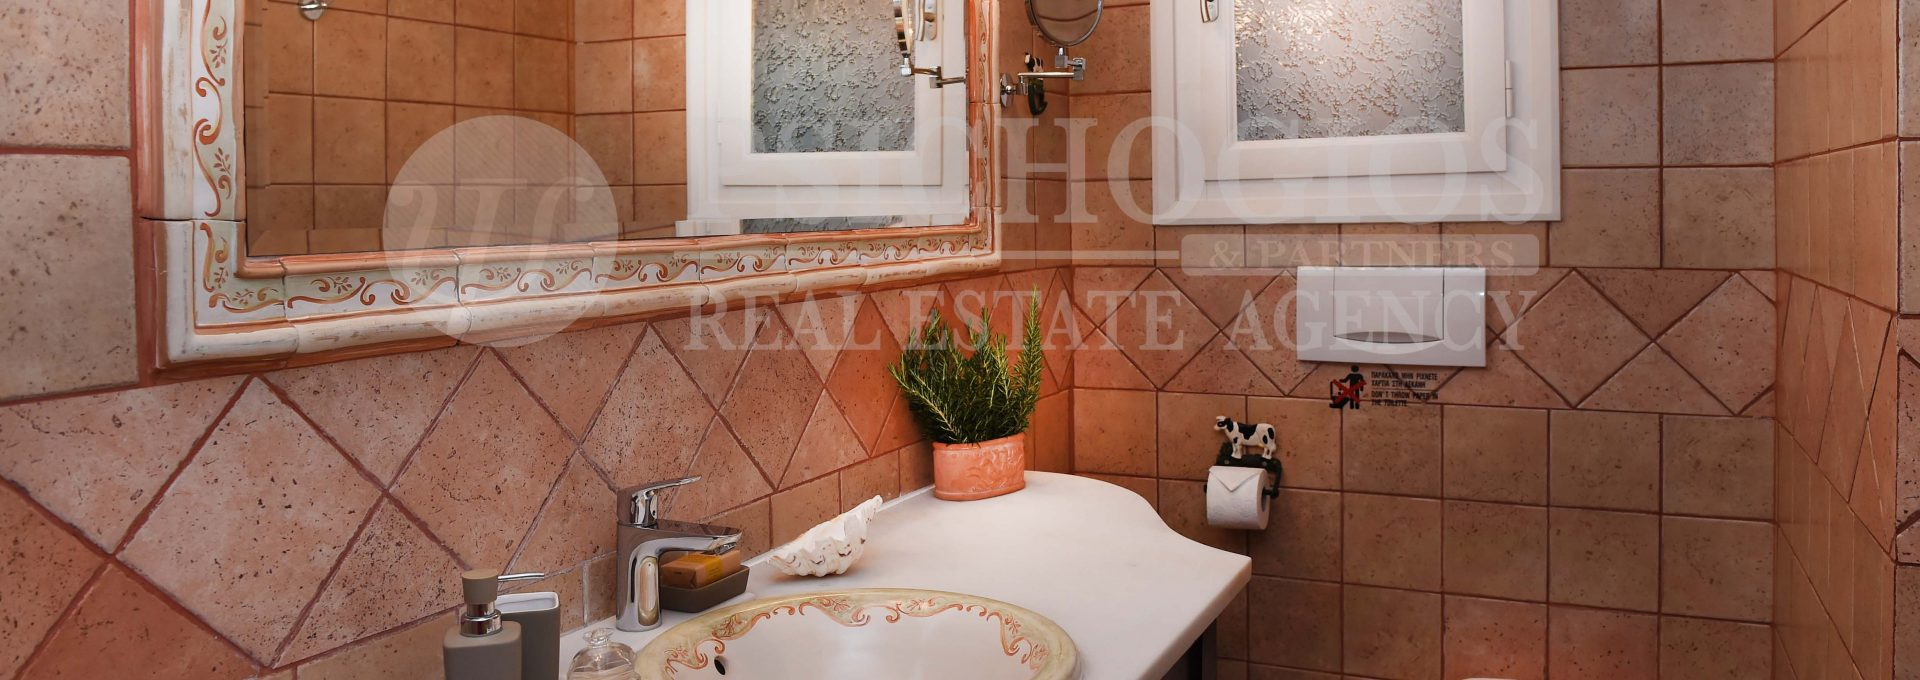 for_rent_house_600_square_meters_sea_view_porto_heli_greece (66)